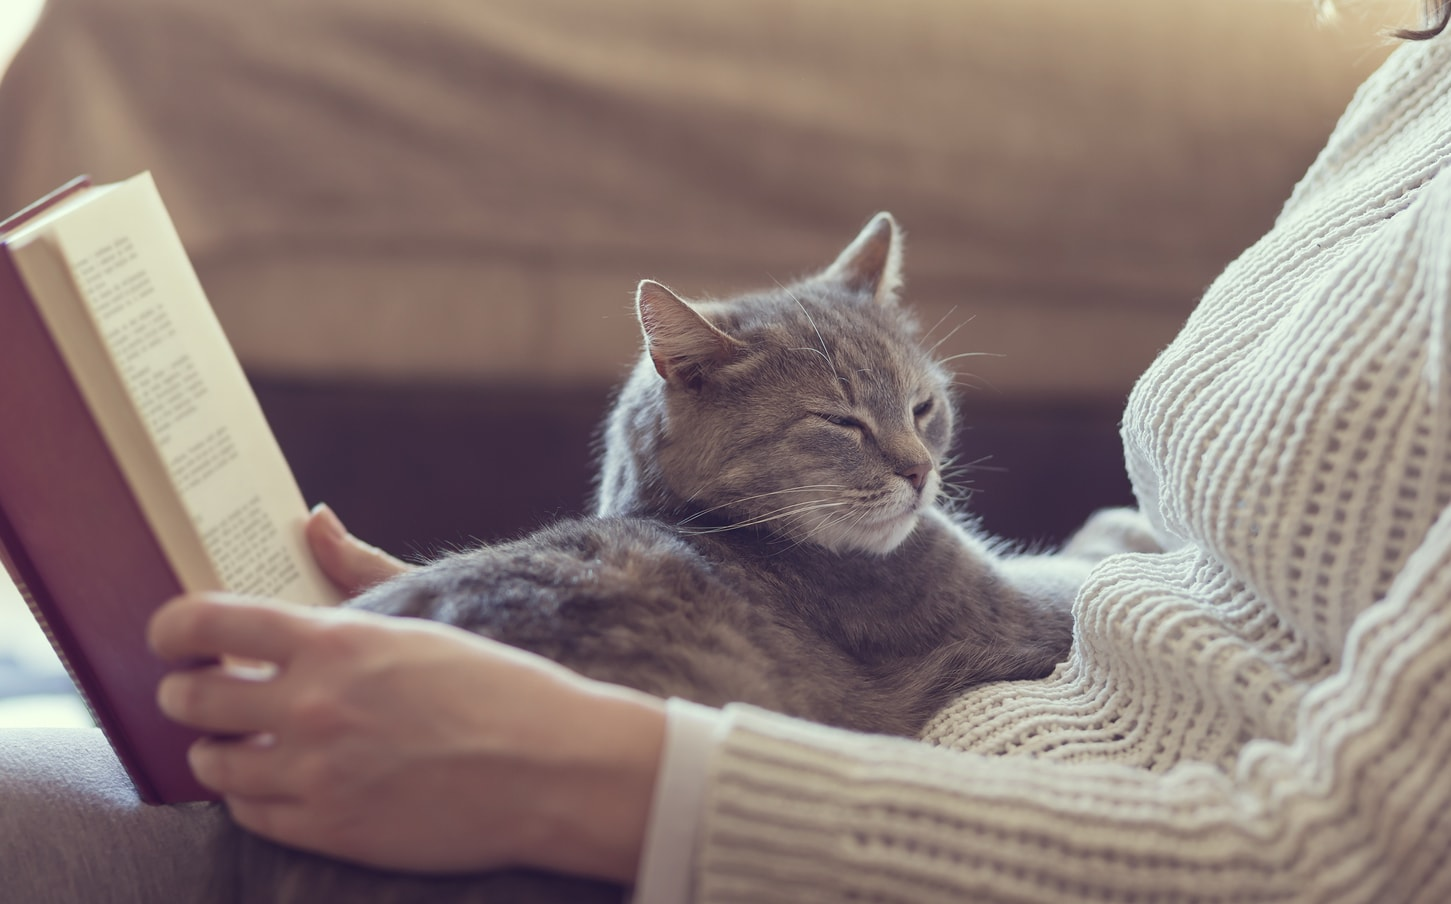 Gray cat lying in lap of woman reading a book.